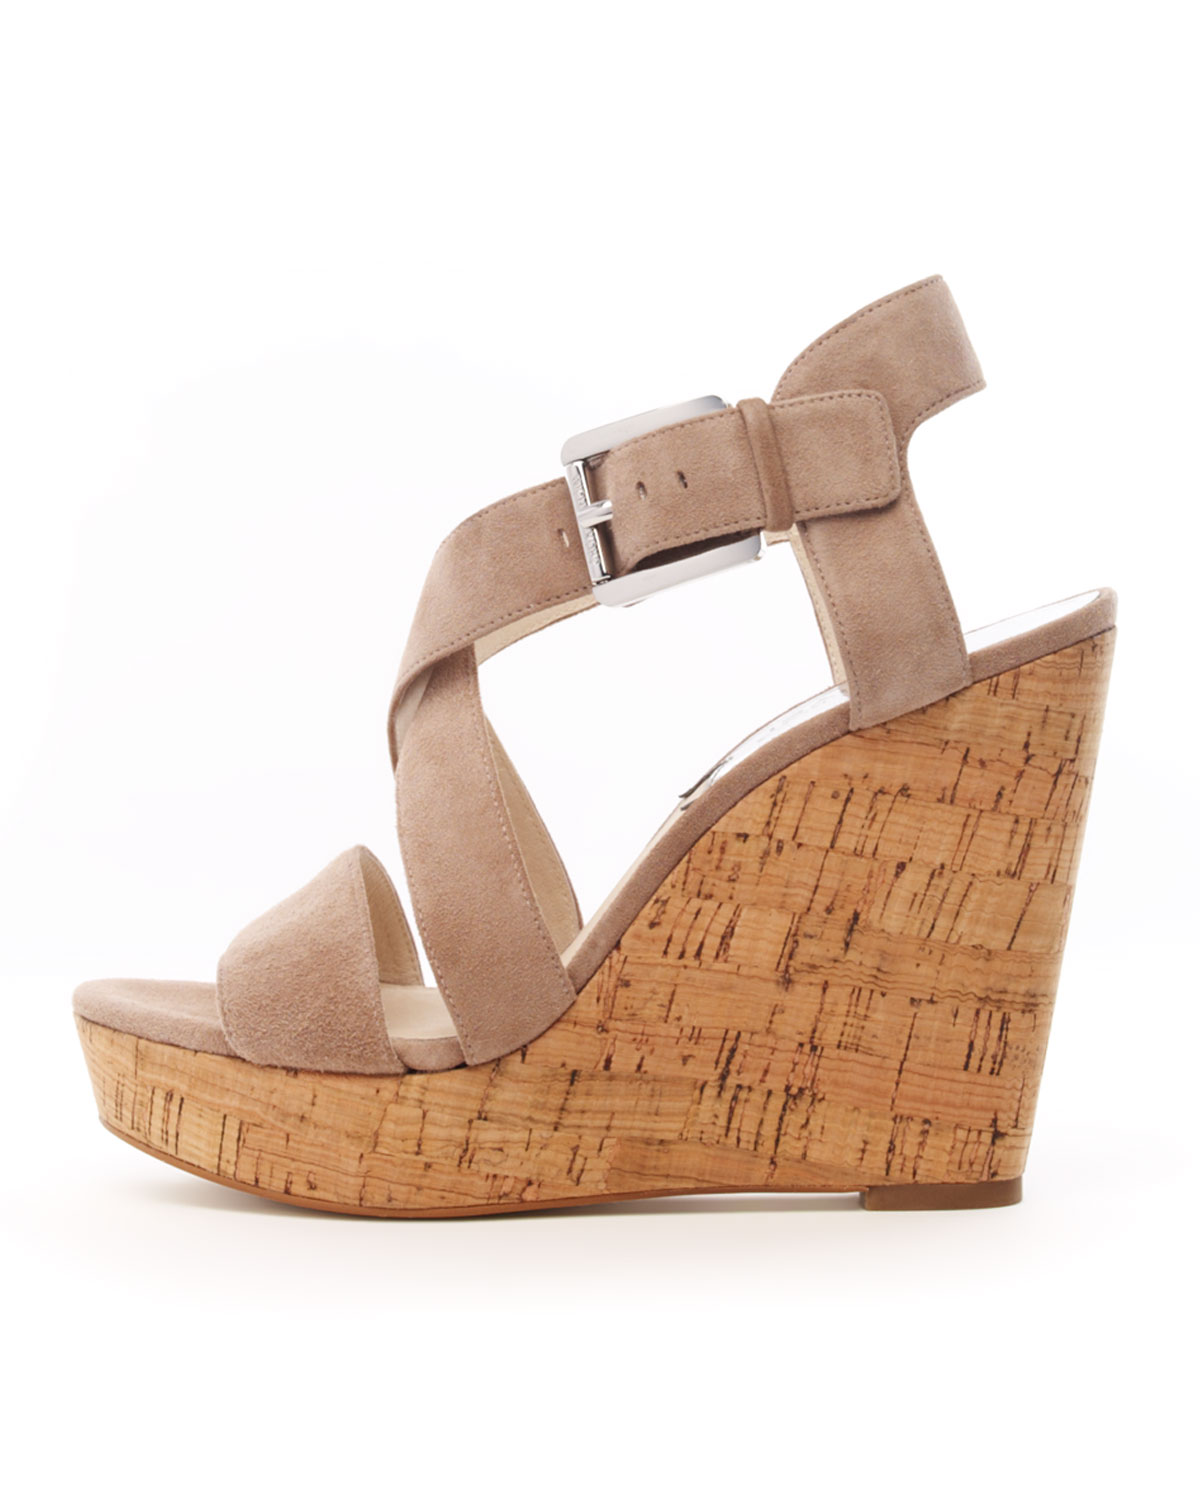 Lyst Michael Kors Giovanna Suede Espadrille Wedge In Brown